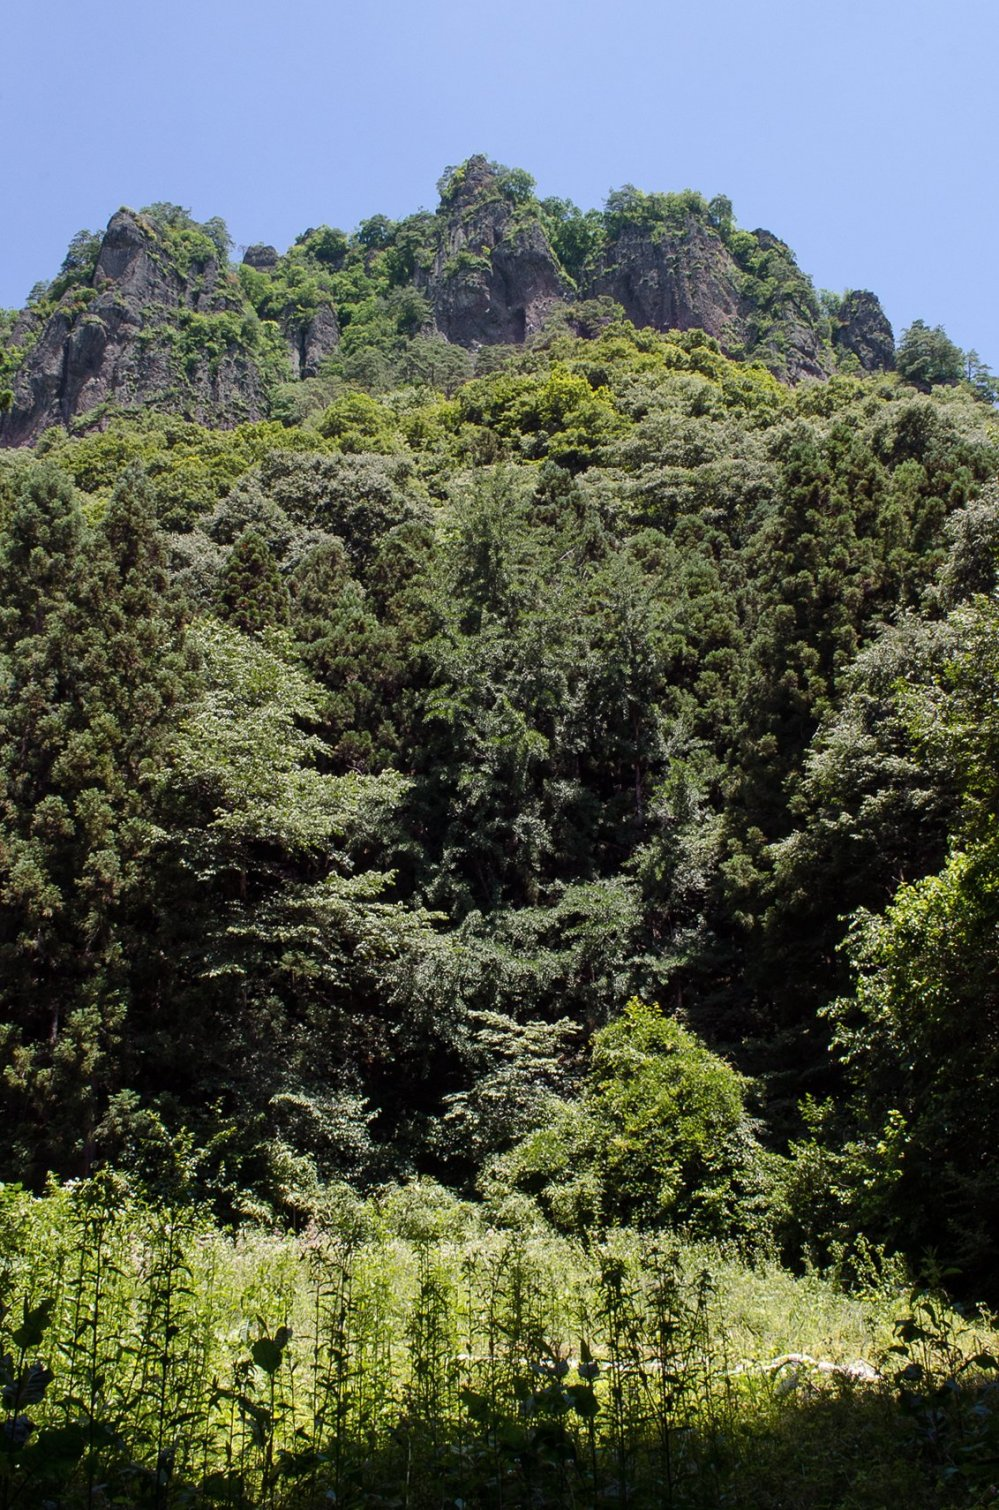 The rocky cliffs of Mount Iwabitsu